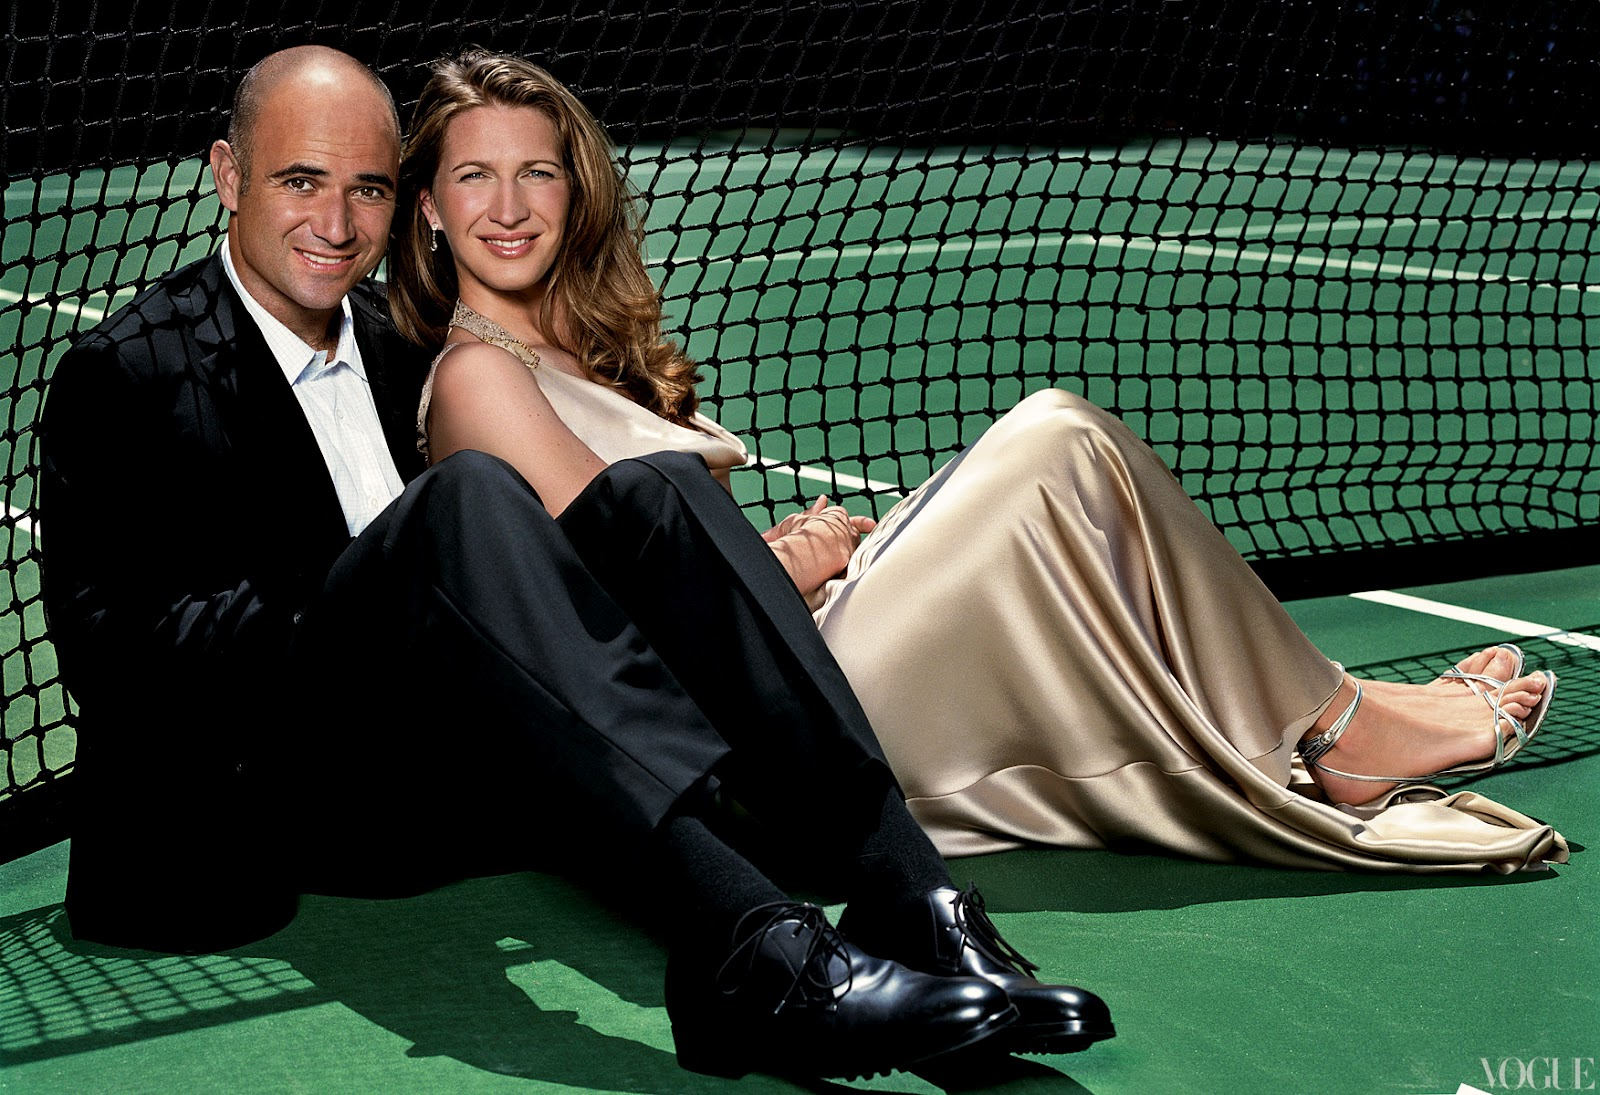 http://3.bp.blogspot.com/-03YxYdWeWT4/T7Roh2AGHNI/AAAAAAAAALQ/wmZPNL7S-lg/s1600/agassi+graf+vogue+aug+2004+by+Patrick+Demarchelier.jpg